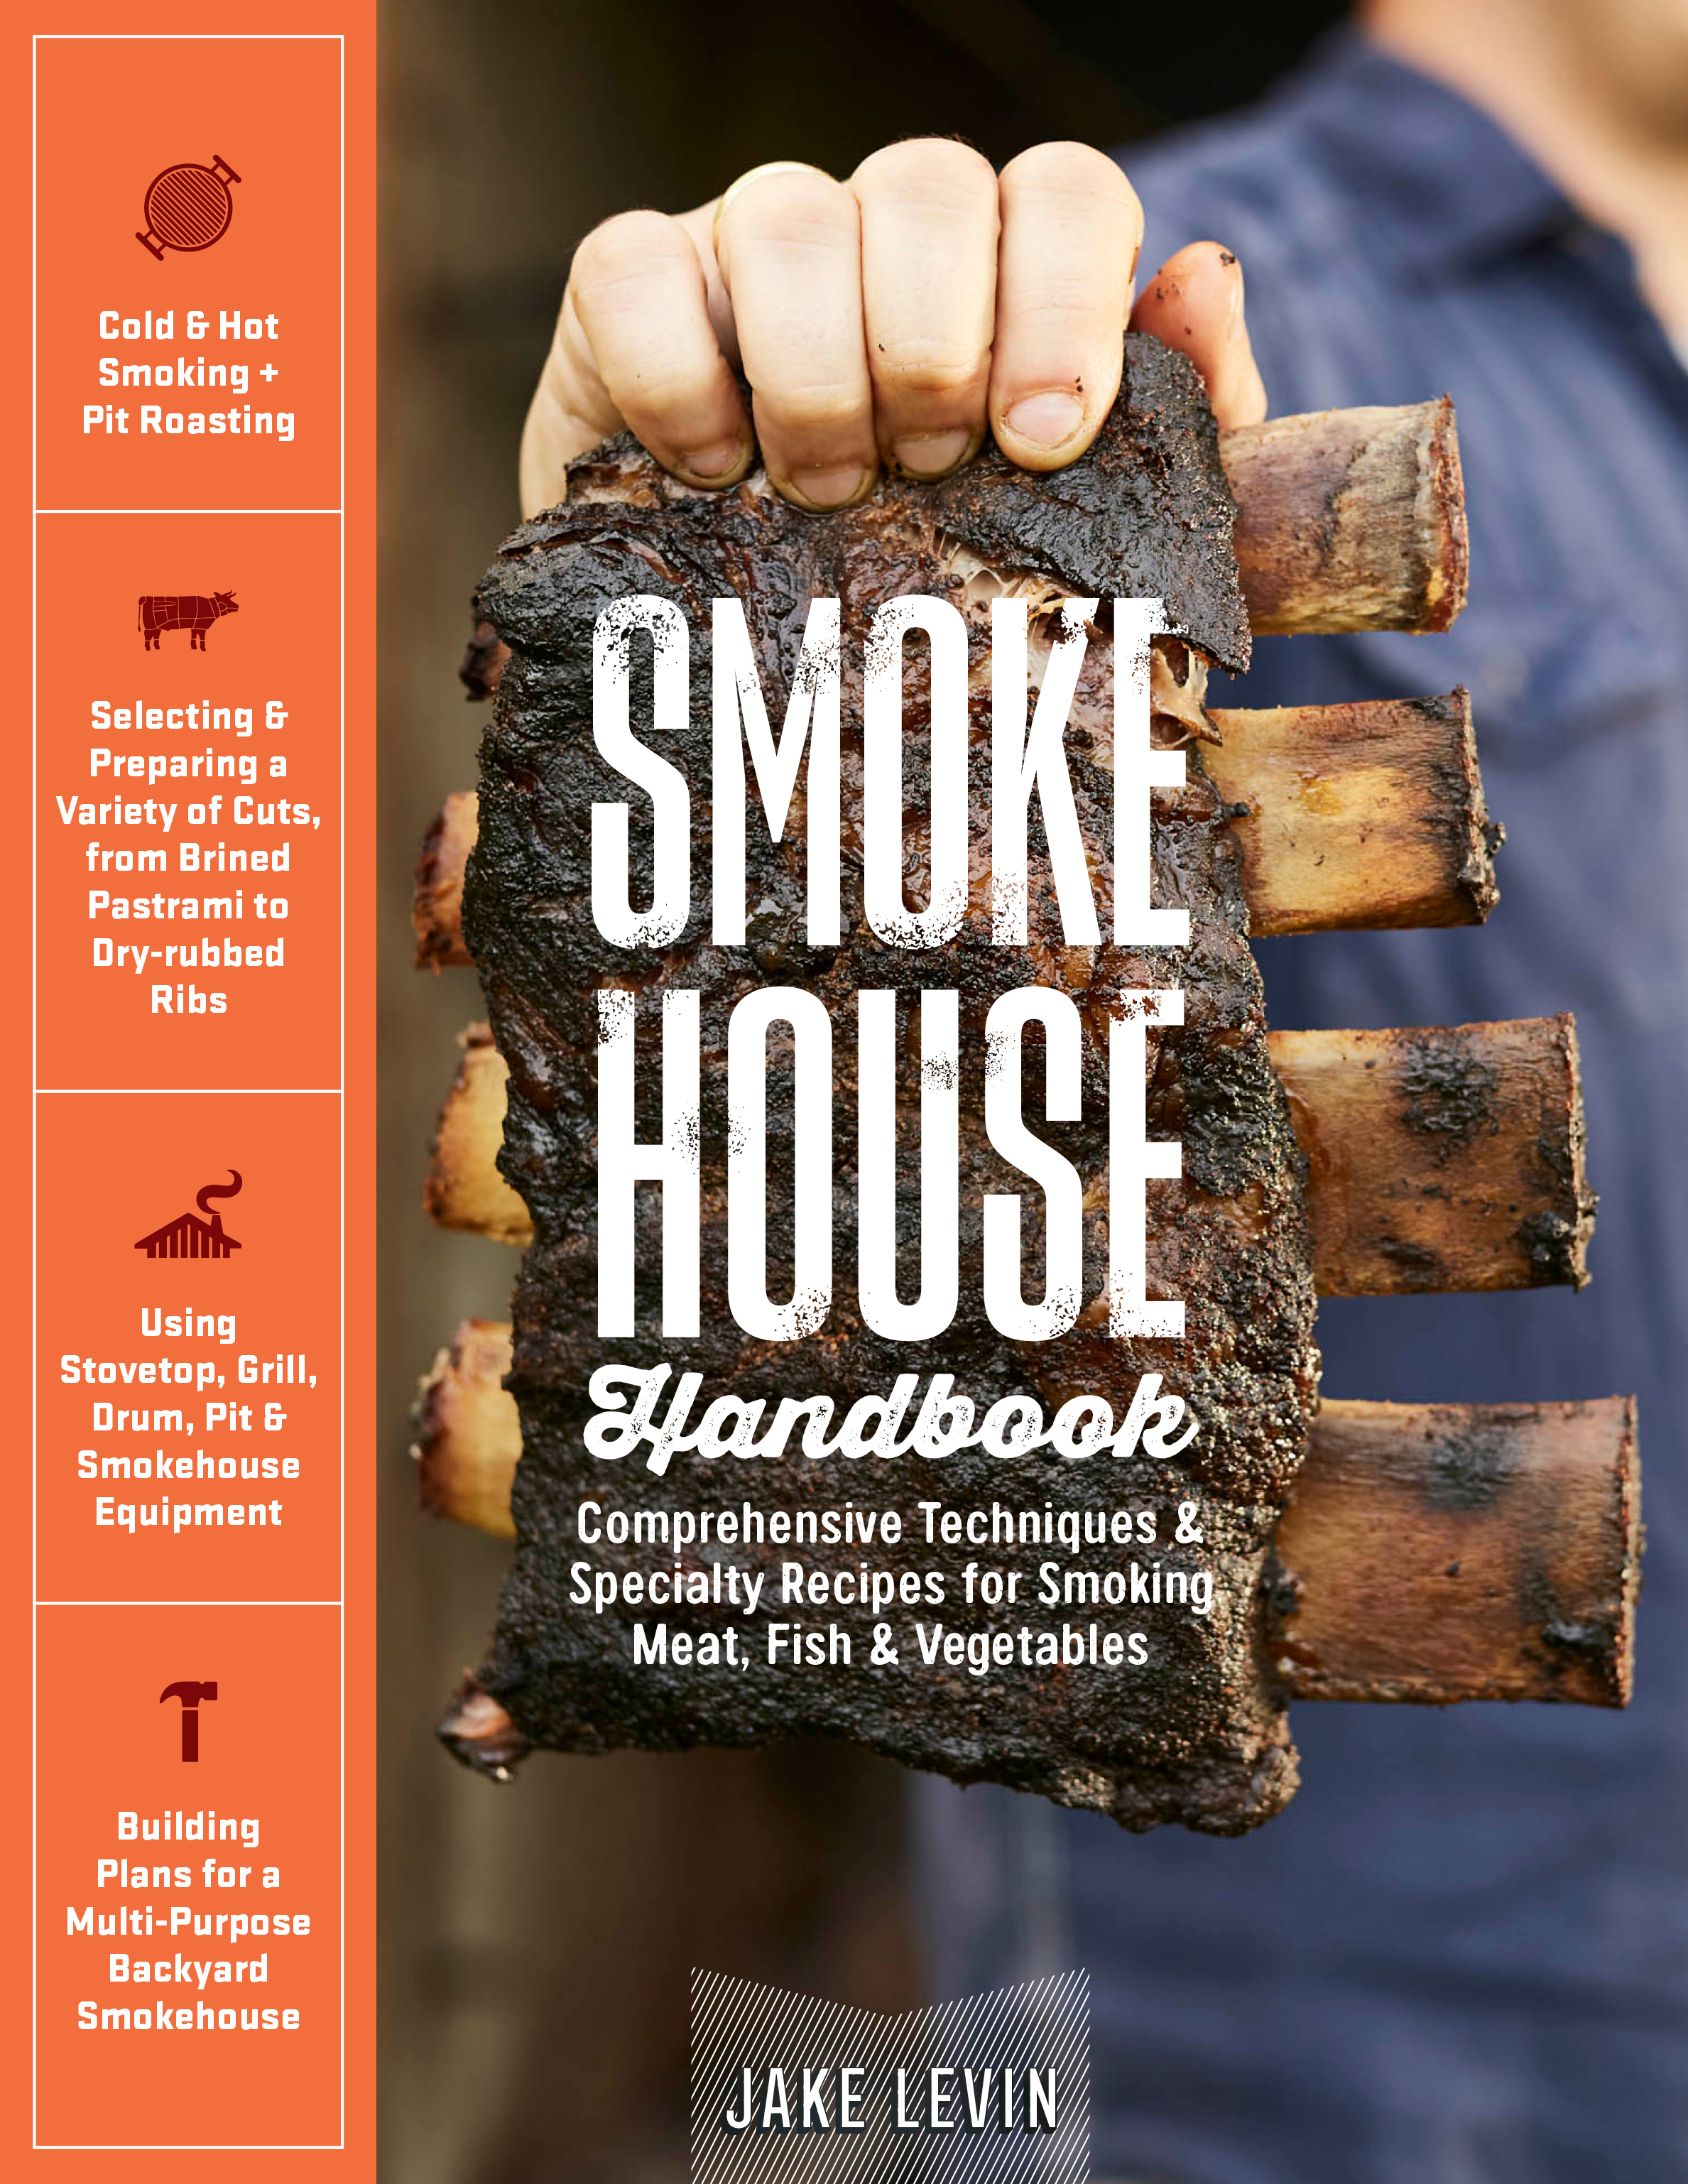 Smokehouse Handbook Comprehensive Techniques & Specialty Recipes for Smoking Meat, Fish & Vegetables - Jake Levin